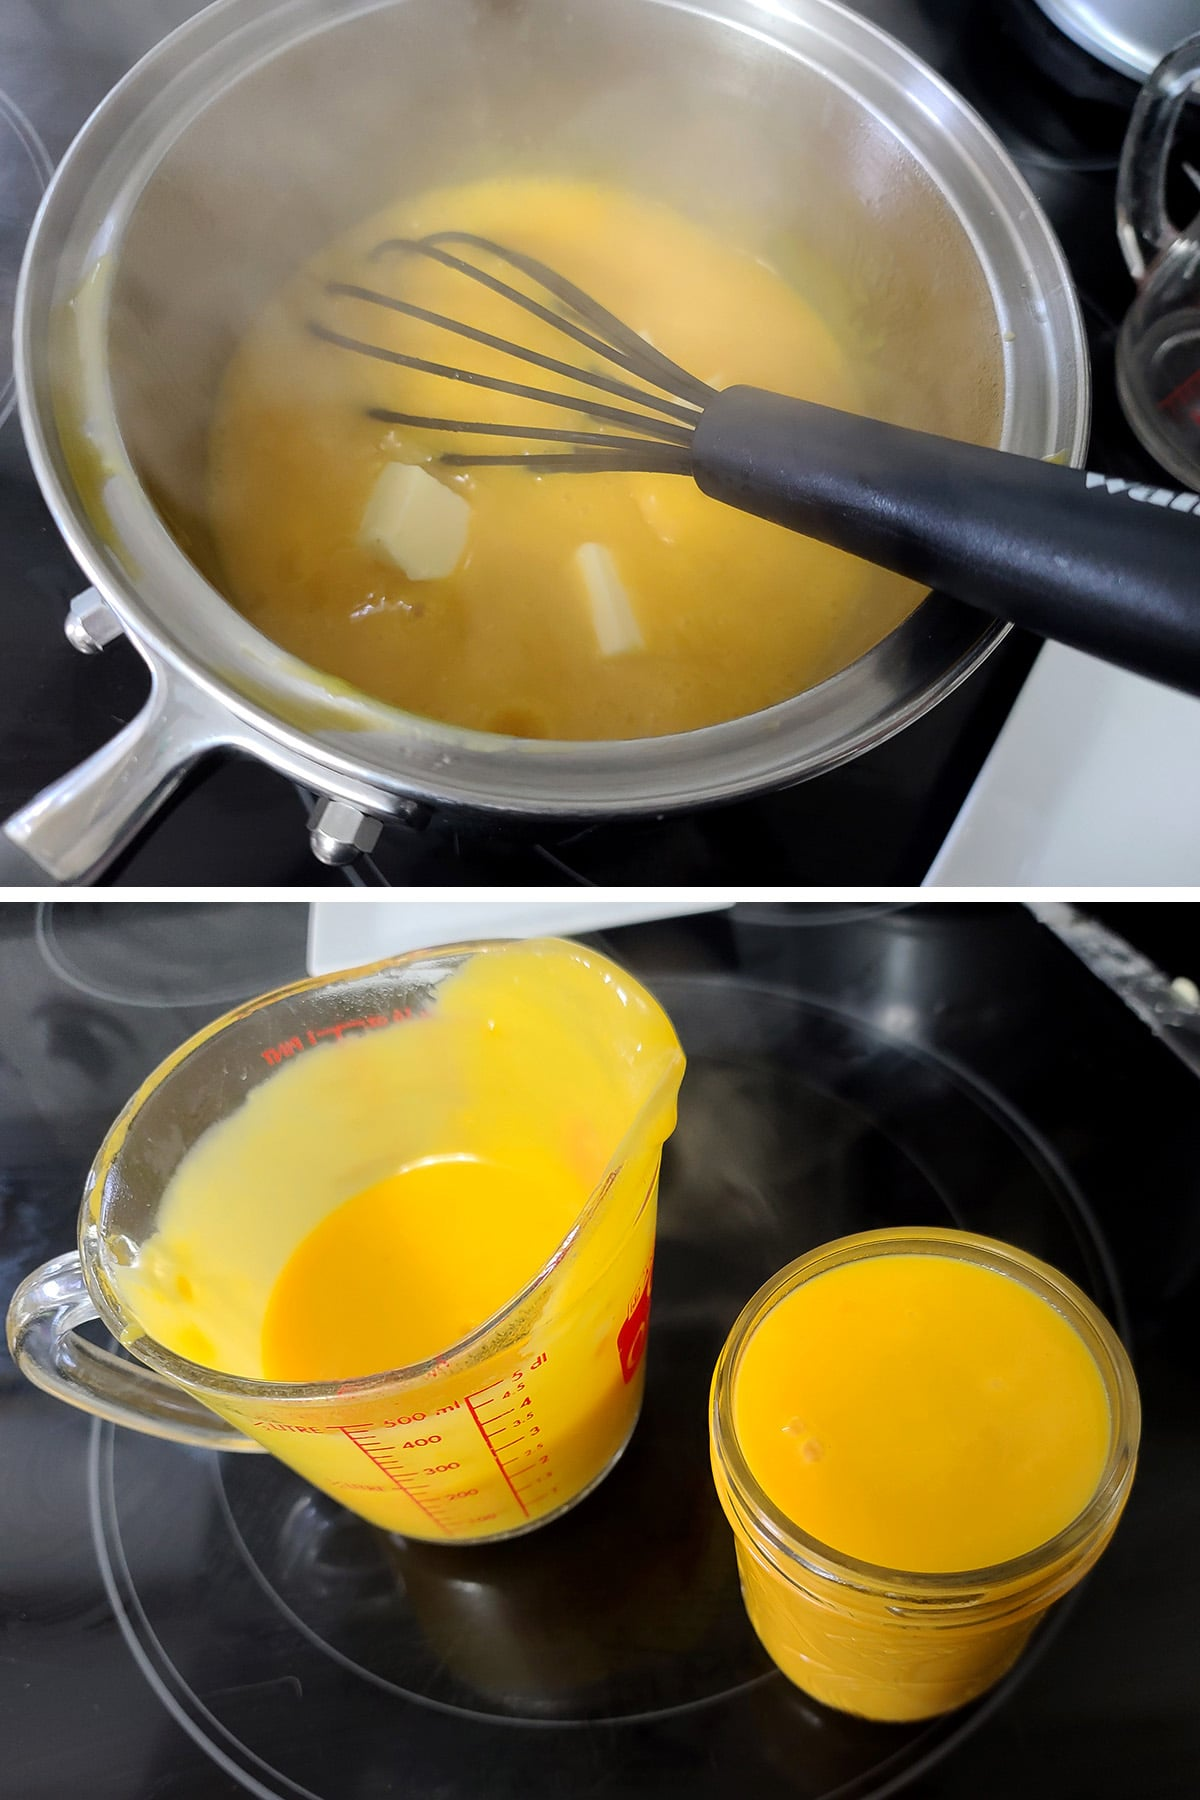 Butter being mixed into hot mango curd, the curd being transferred to a jar.